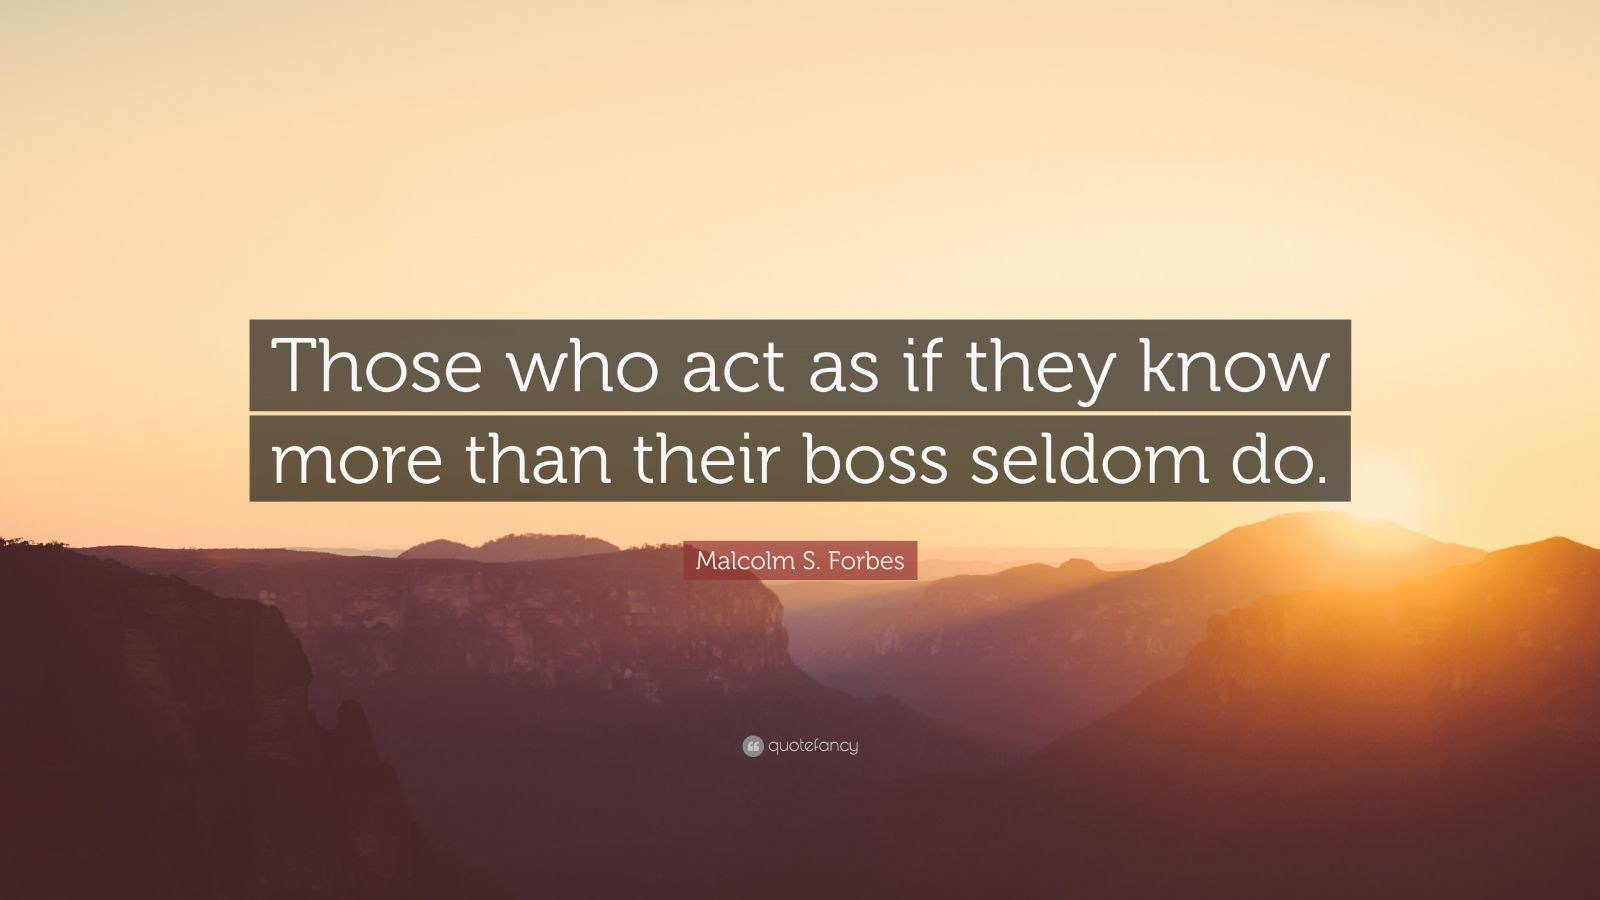 """Malcolm S. Forbes Quote: """"Those who act as if they know more than their boss seldom do."""""""